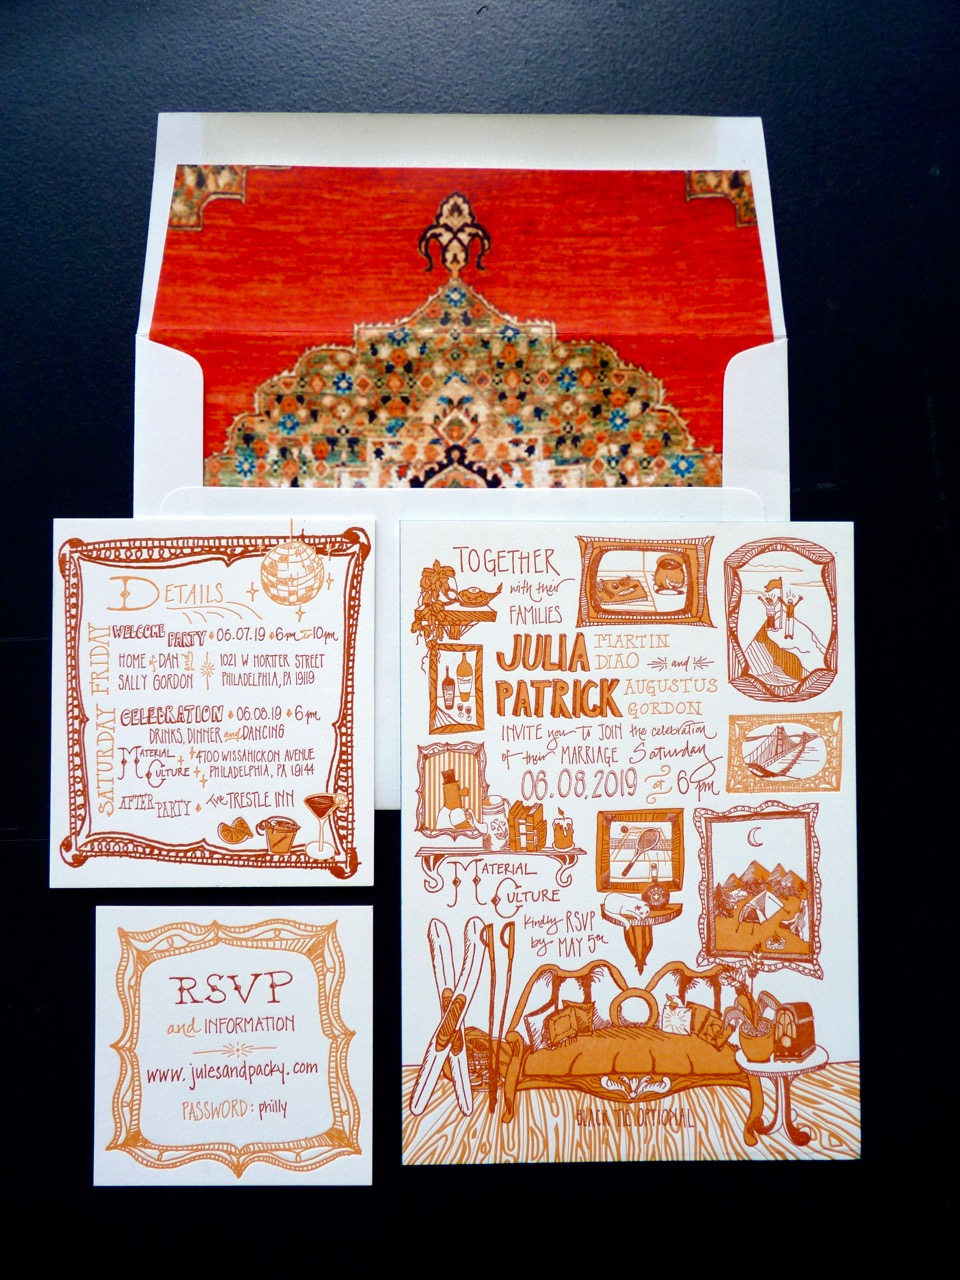 A photograph of a unique illustrated wedding invitation with frames, keepsakes, and antiques in shades of orange and rust. Letterpress printed. Envelope liner made of wallpaper samples.